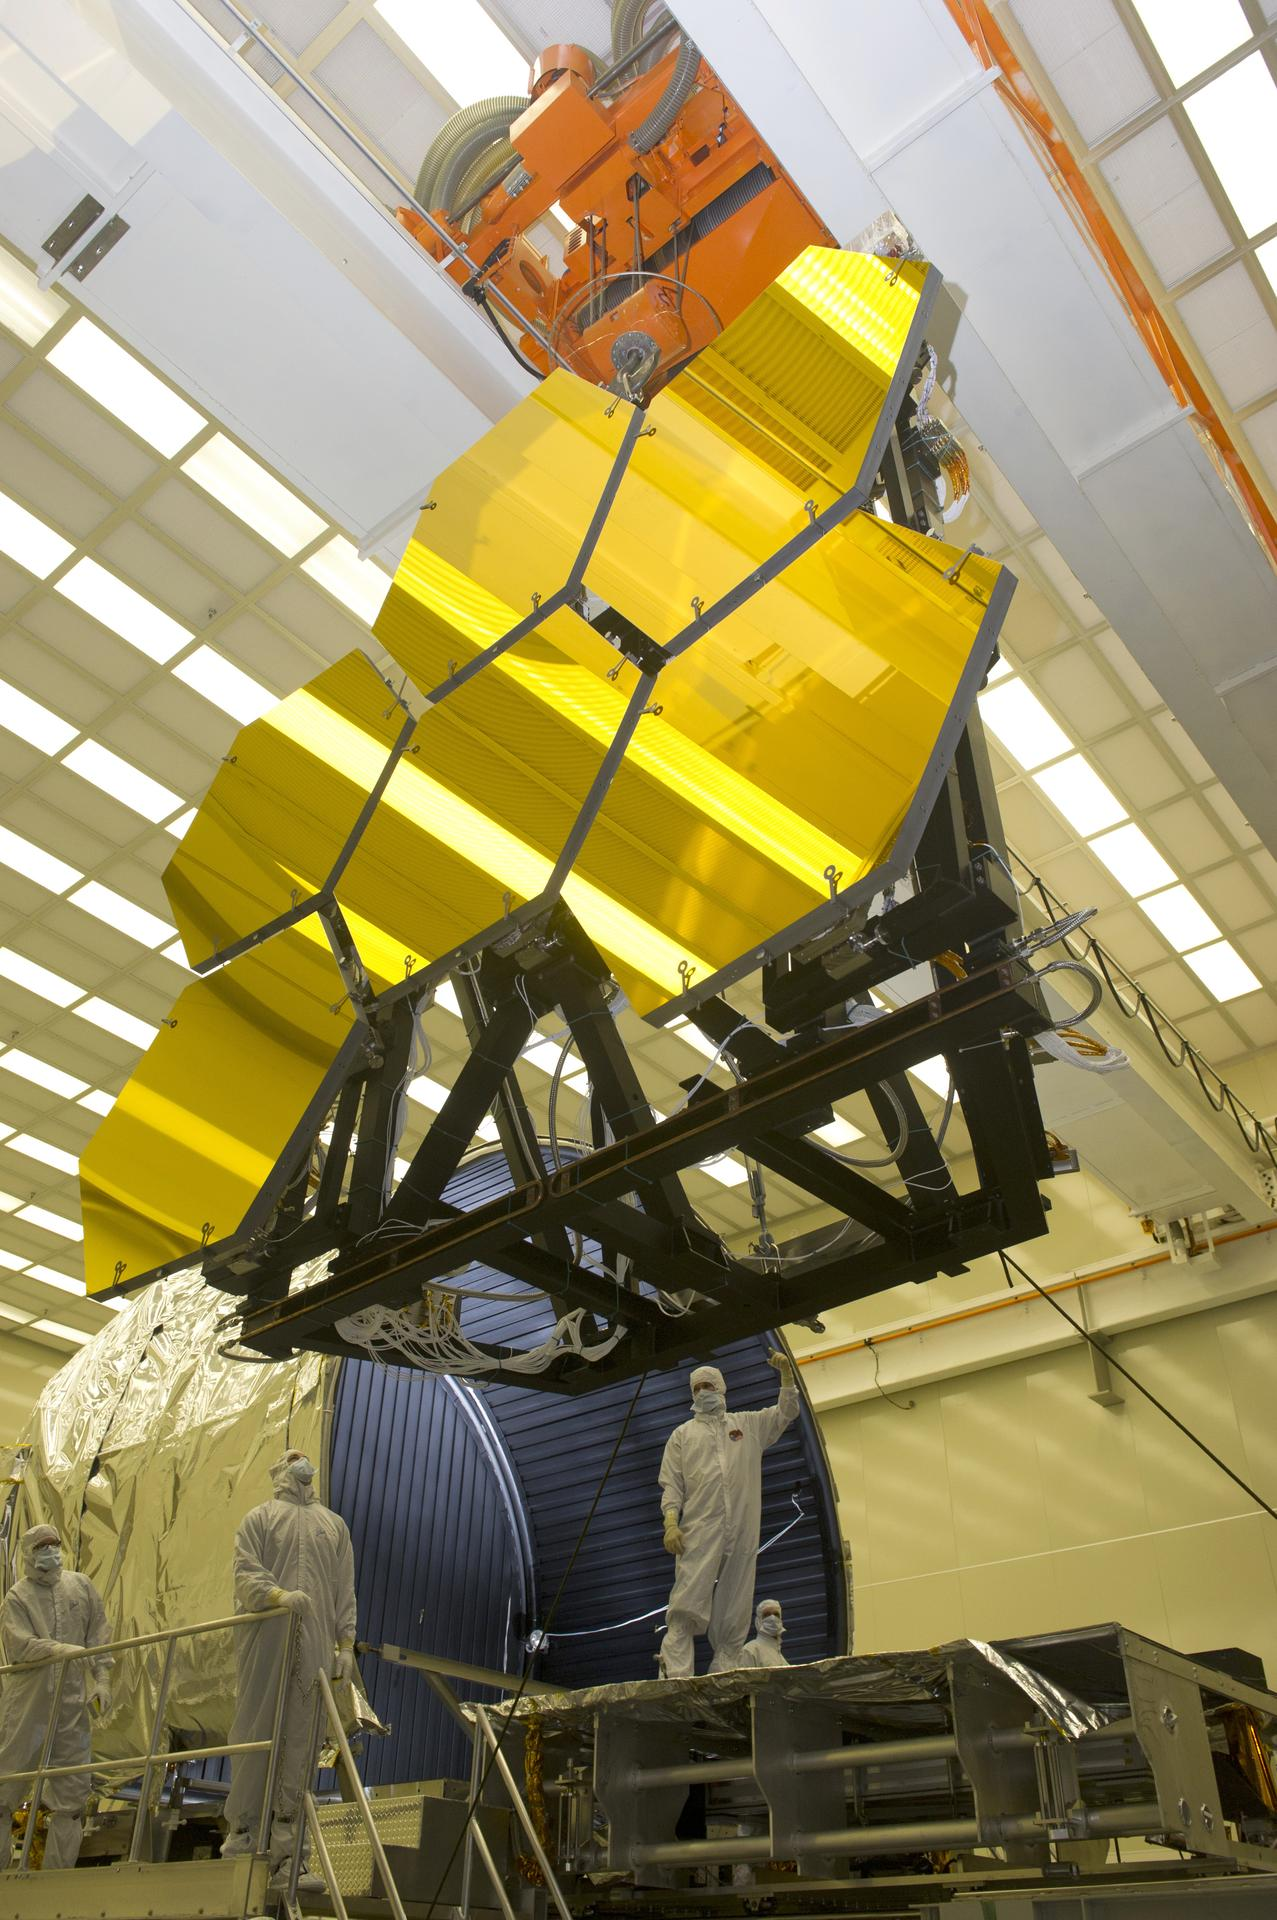 ECHNICIANS REMOVE FINAL SIX JWST MIRRORS TESTED AT MSFC X-RAY AND CRYOGENIC FACILITY